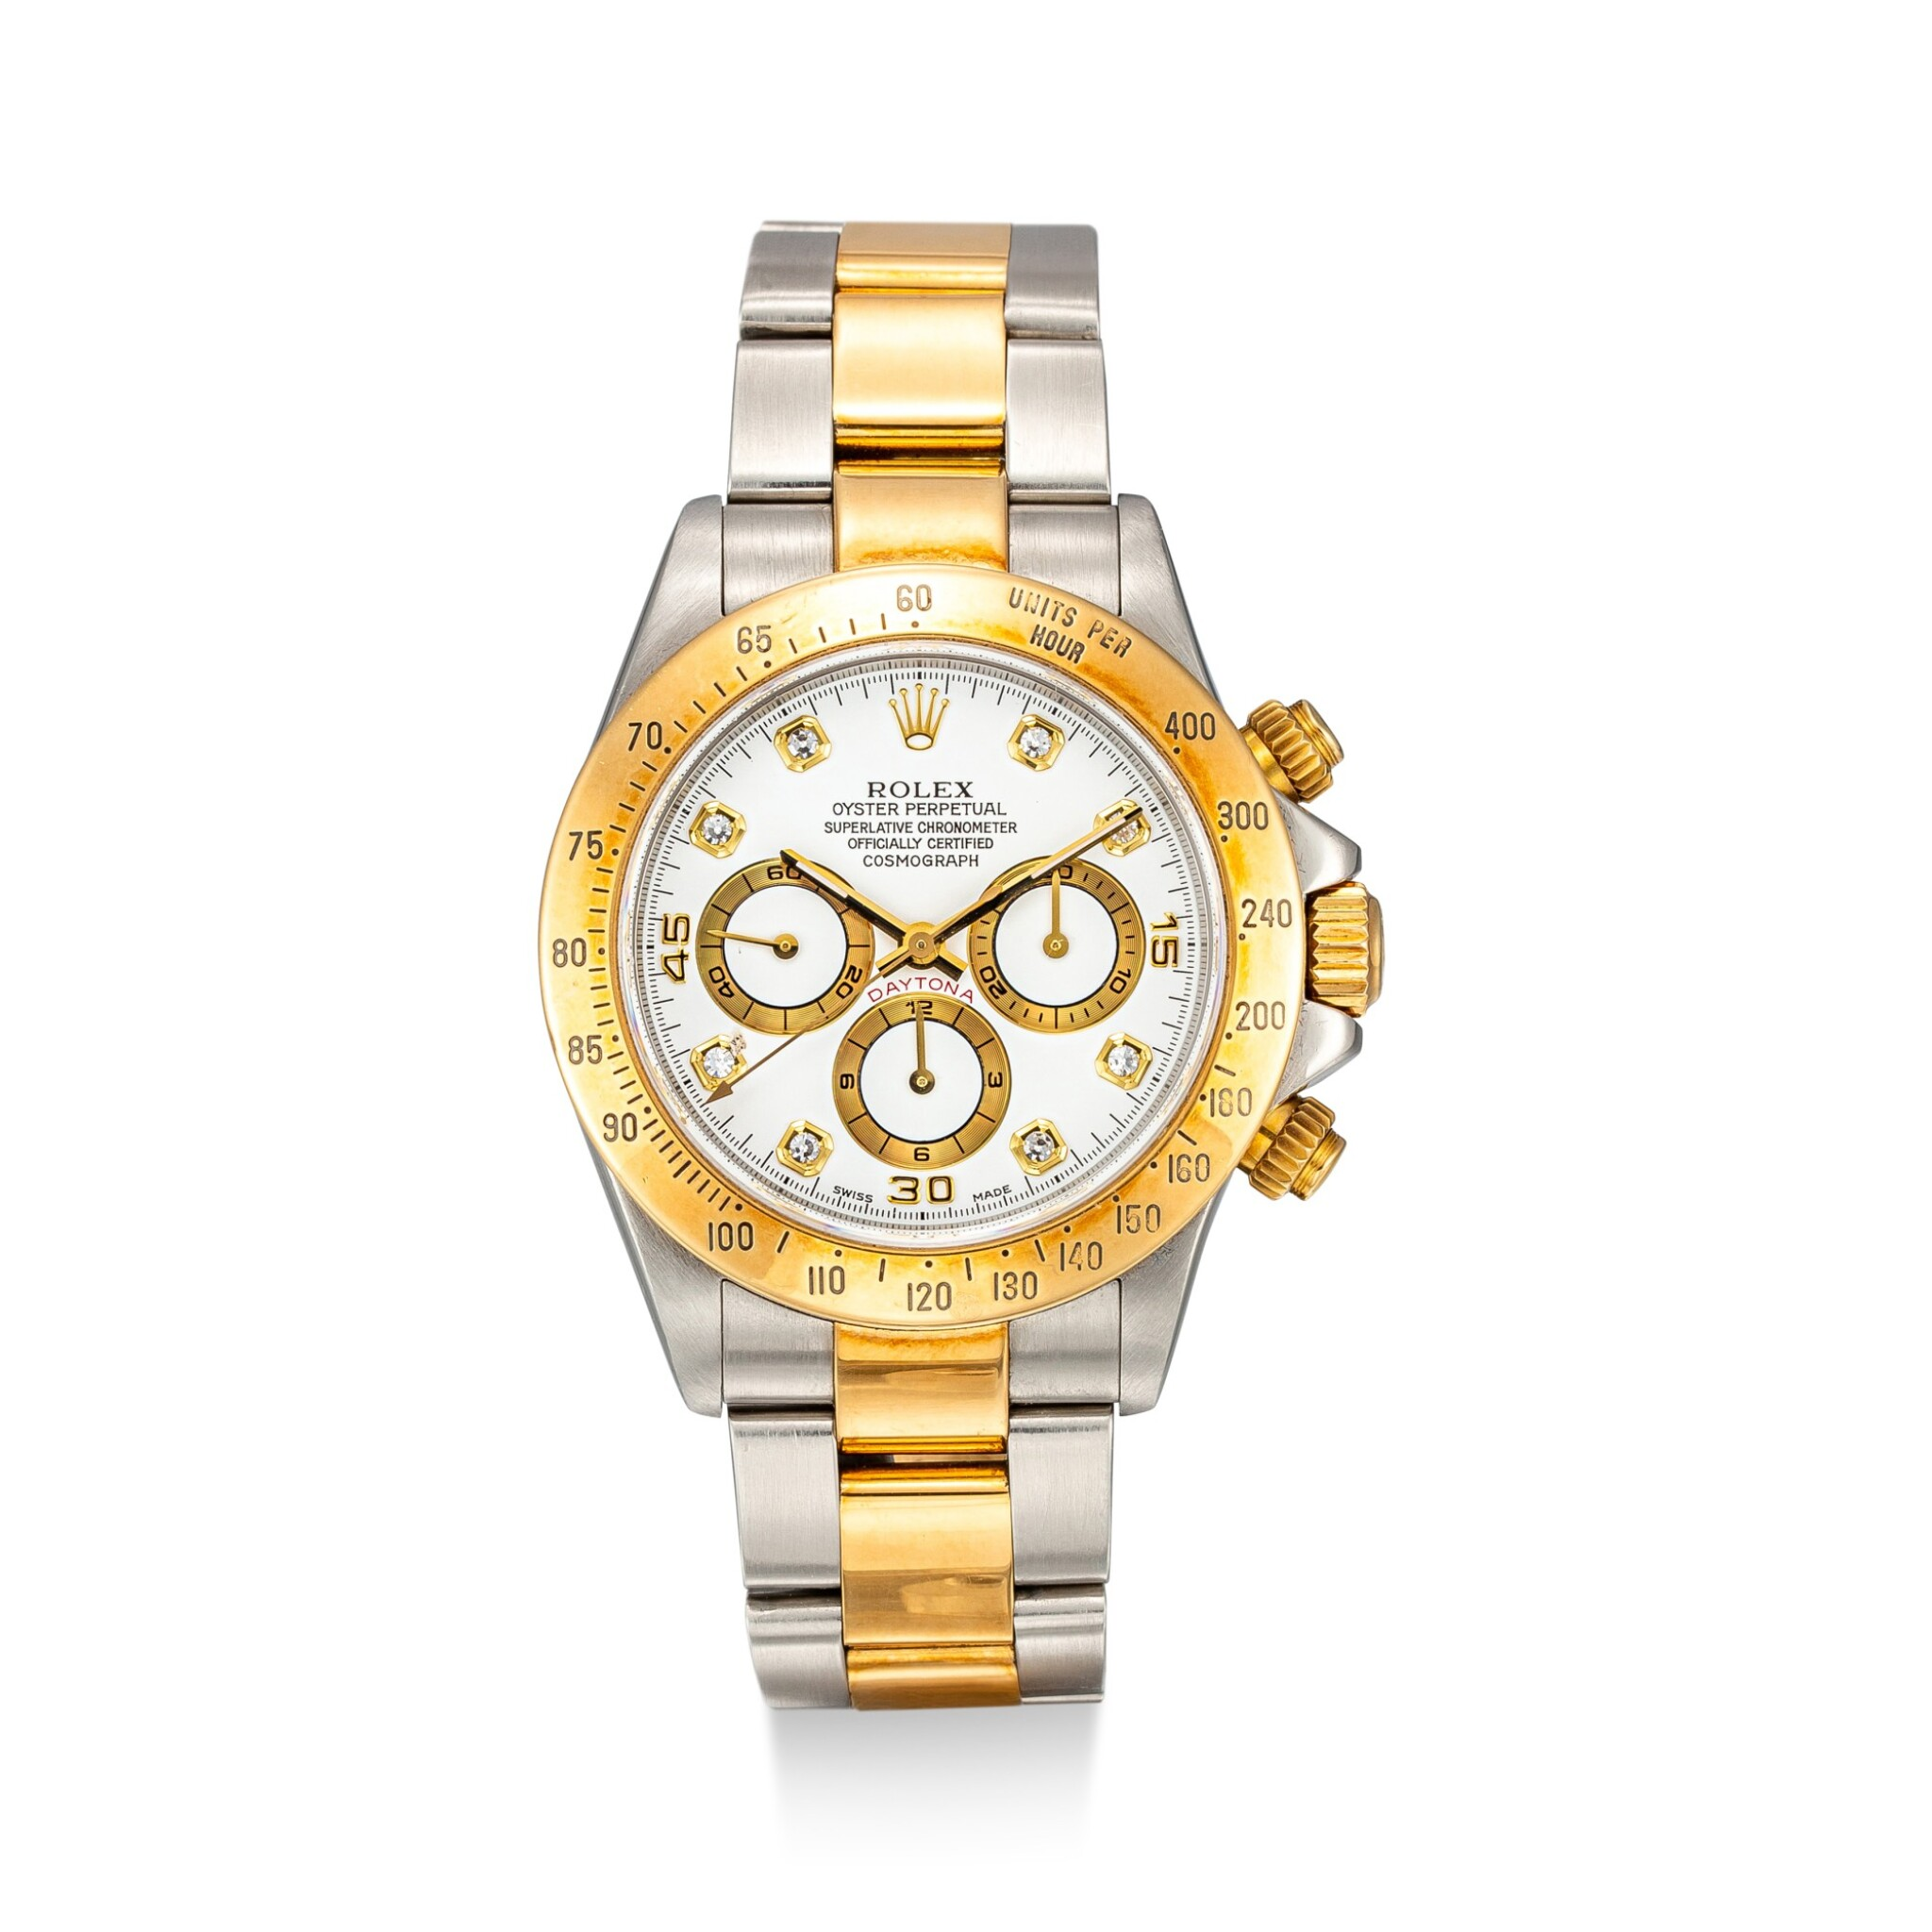 View full screen - View 1 of Lot 853. ROLEX | COSMOGRAPH DAYTONA, REFERENCE 16523 A YELLOW GOLD, STAINLESS STEEL AND DIAMOND-SET CHRONOGRAPH WRISTWATCH WITH BRACELET, CIRCA 1999.